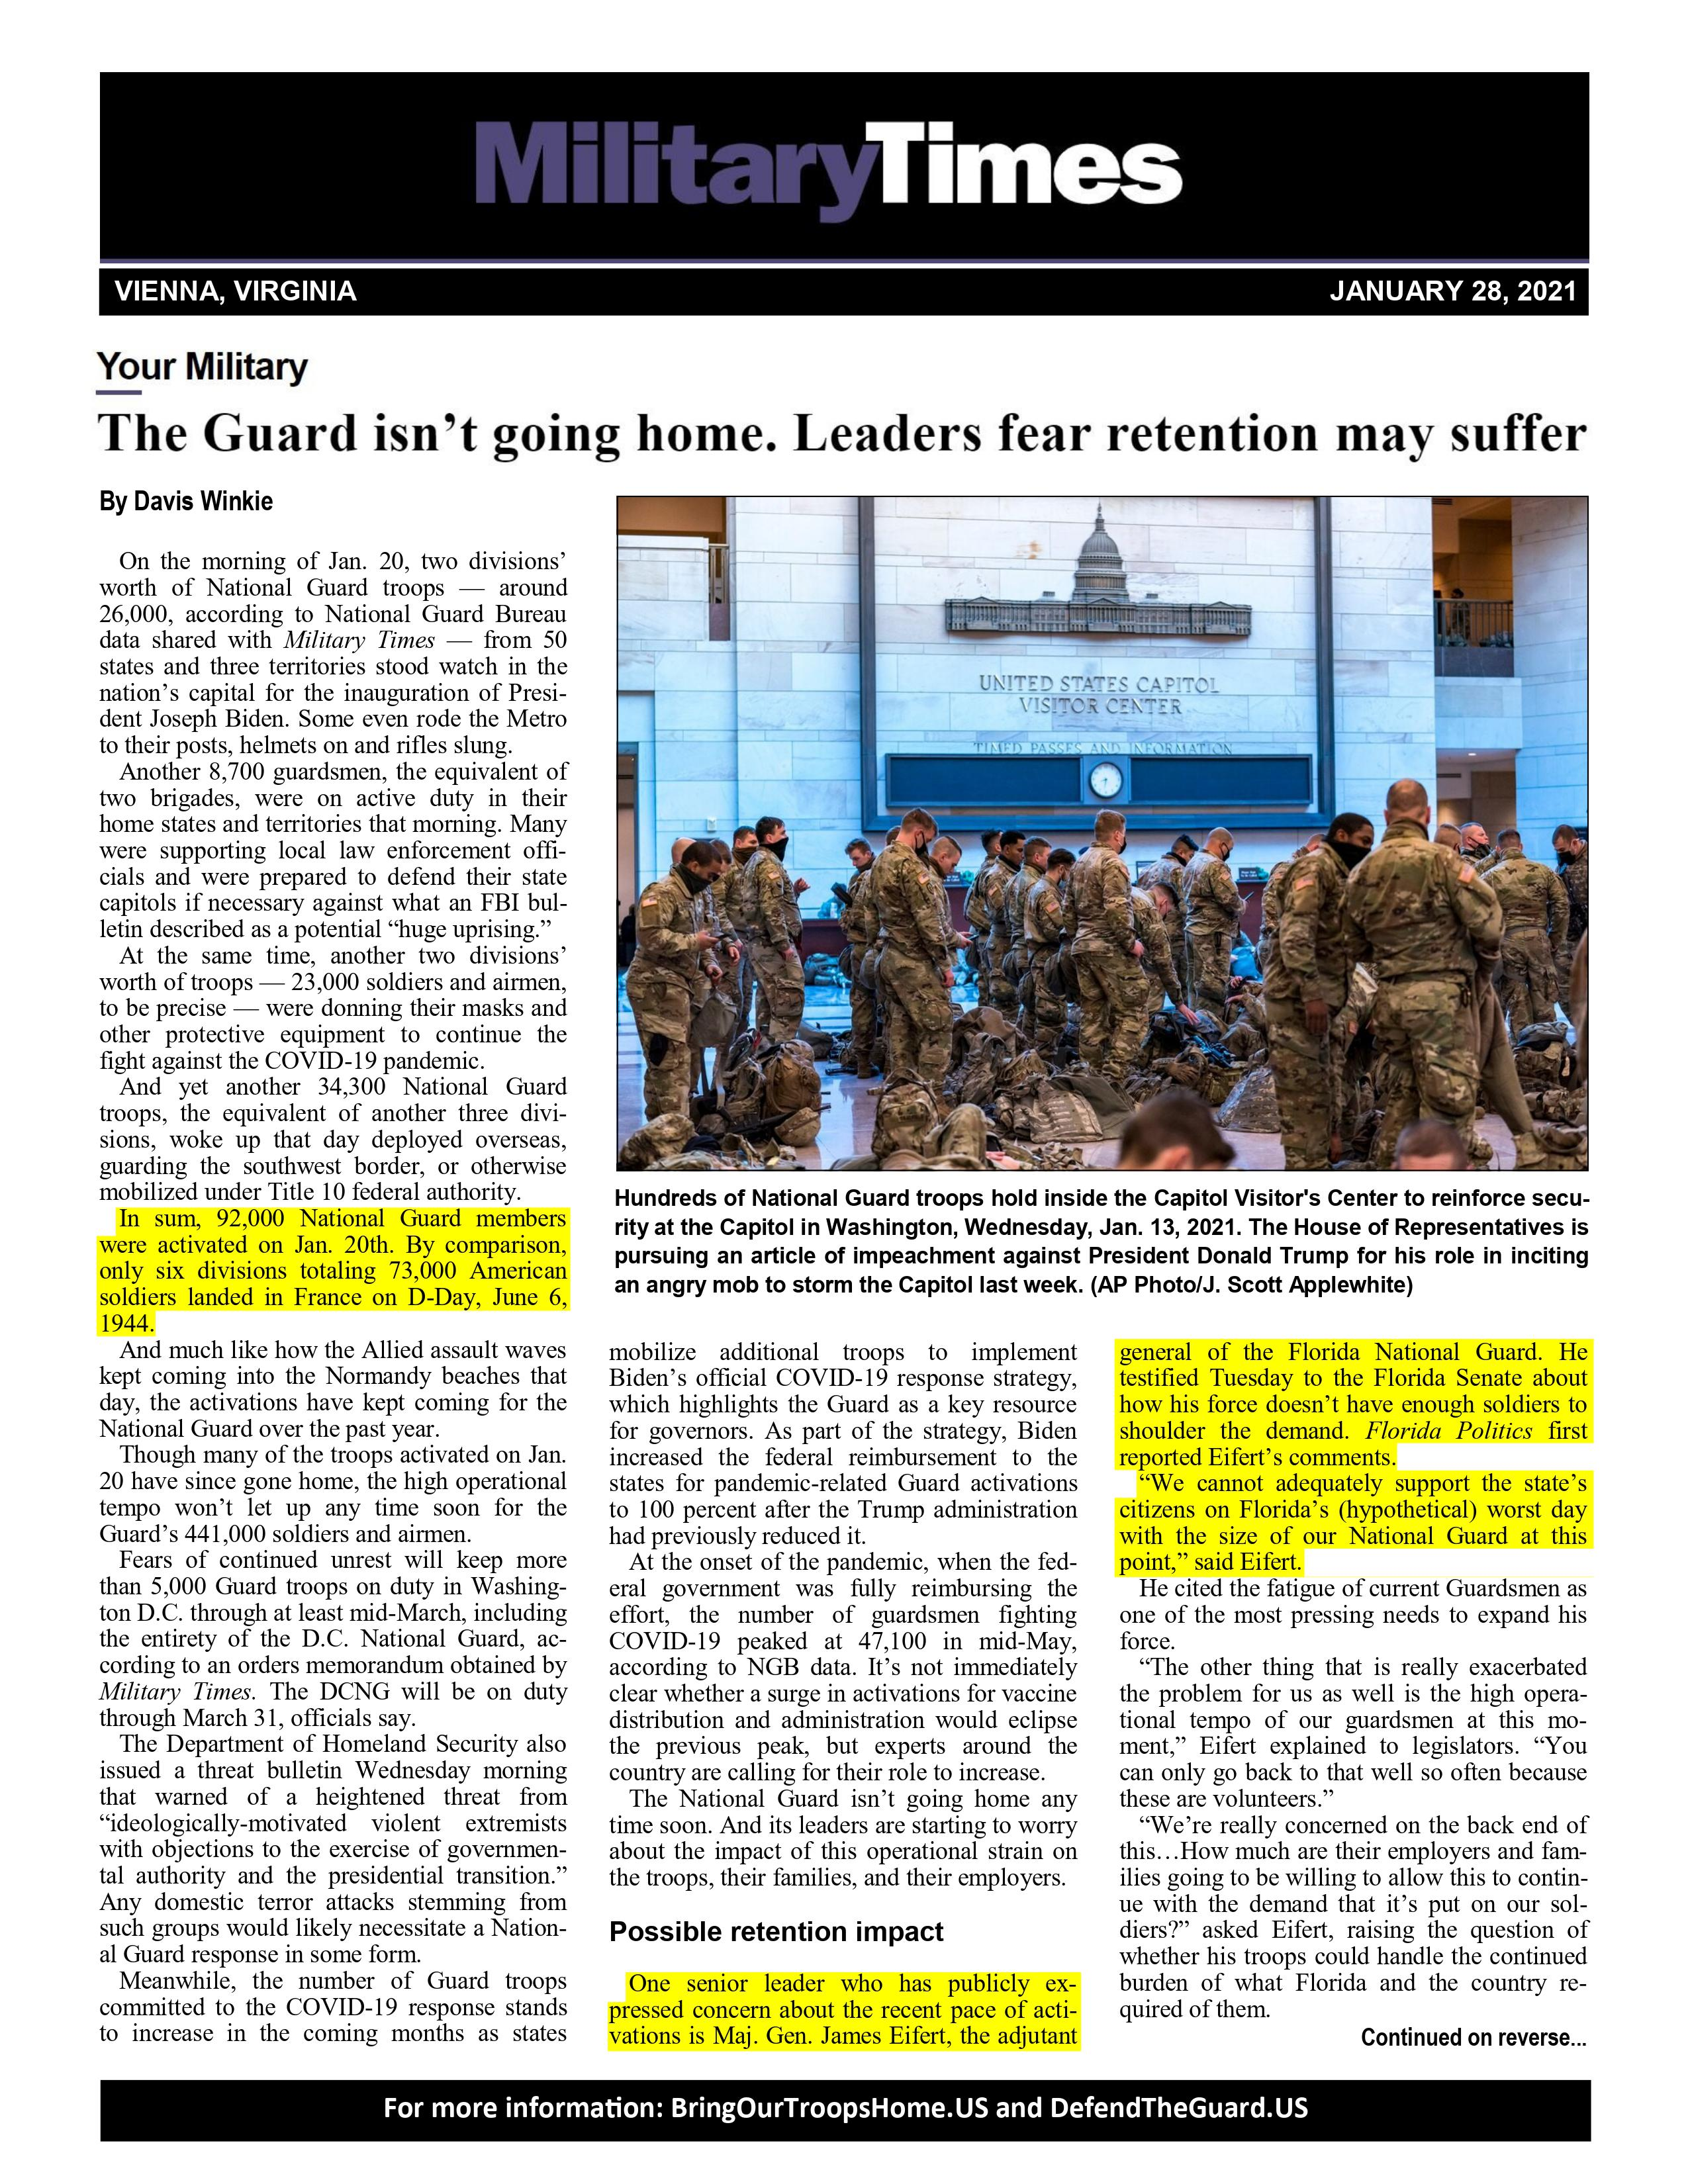 The Guard Isn't Going Home; Leaders Fear Retention May Suffer